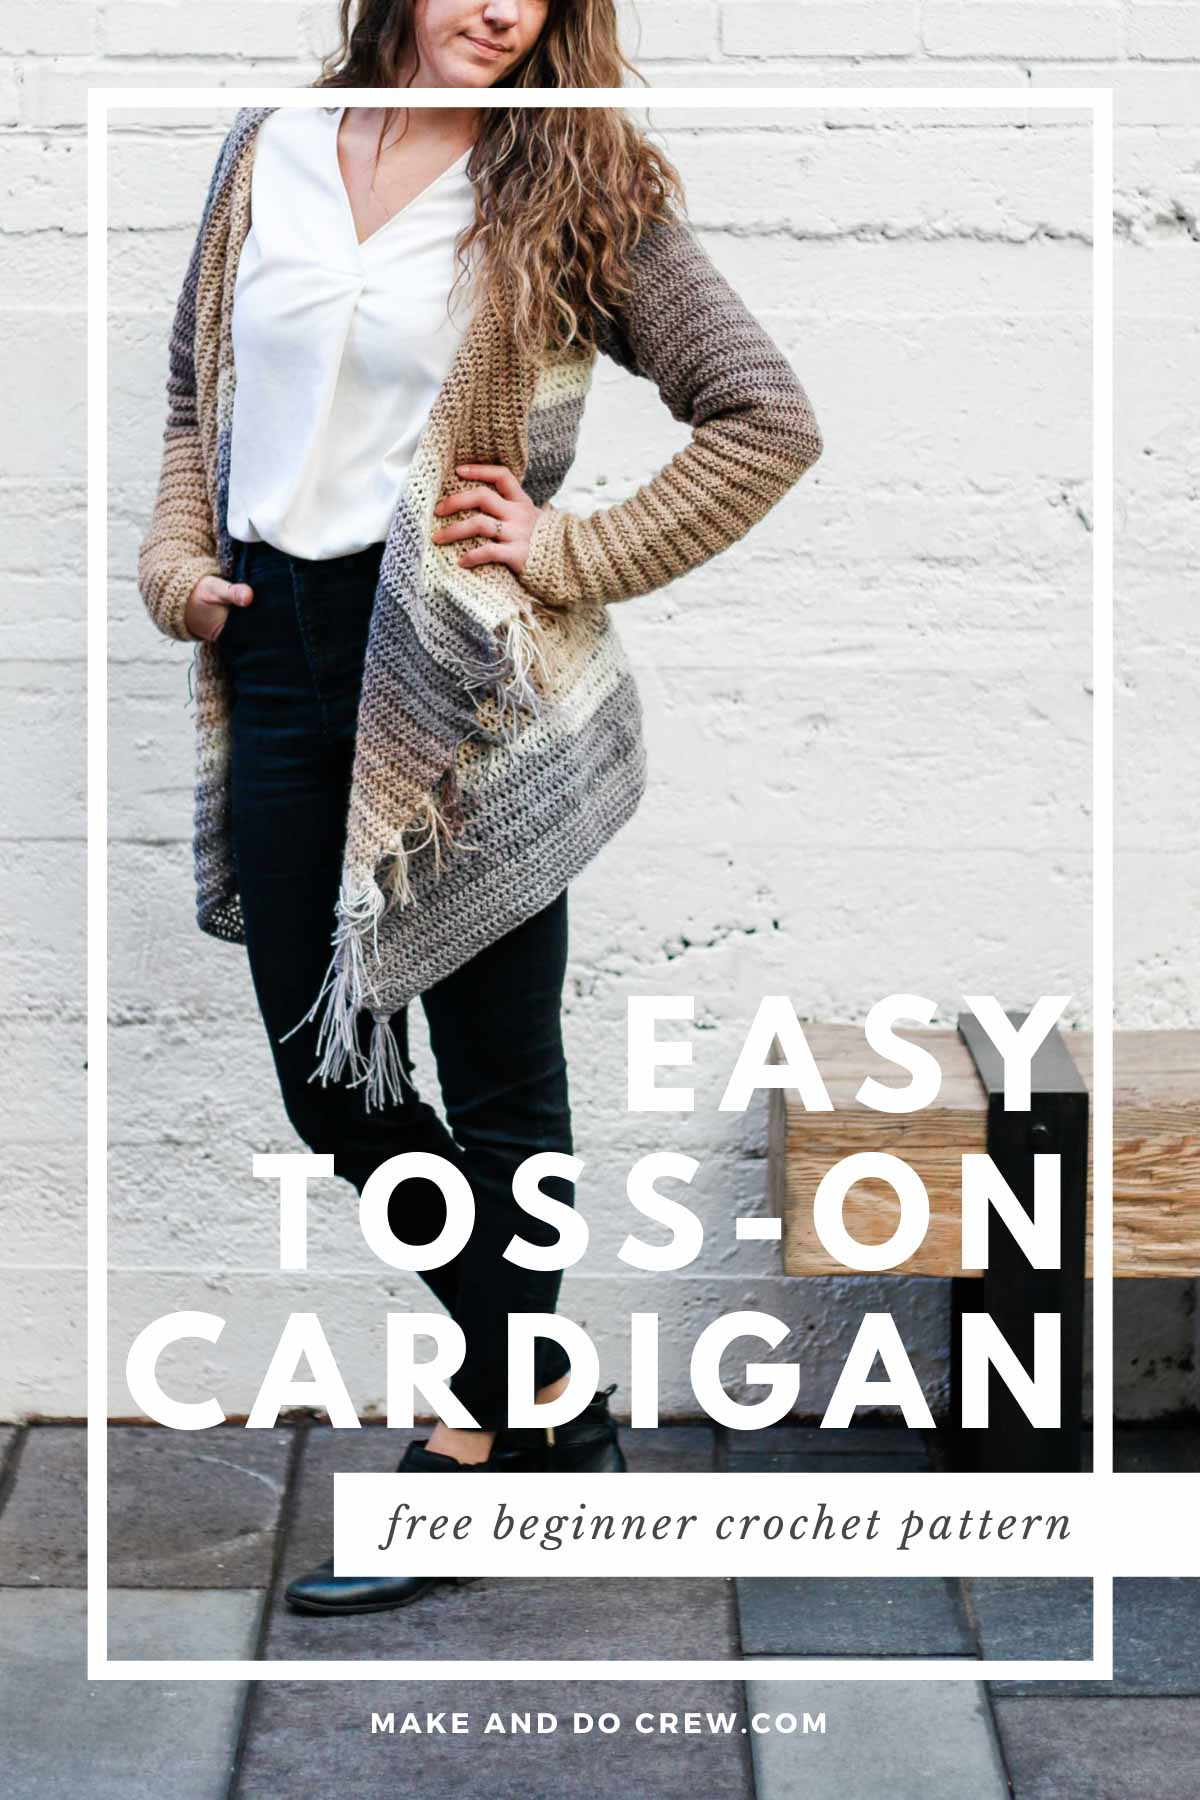 With a hood, fringe and subtle stripes, this is the only crochet cardigan you need! Beginner friendly tutorial.